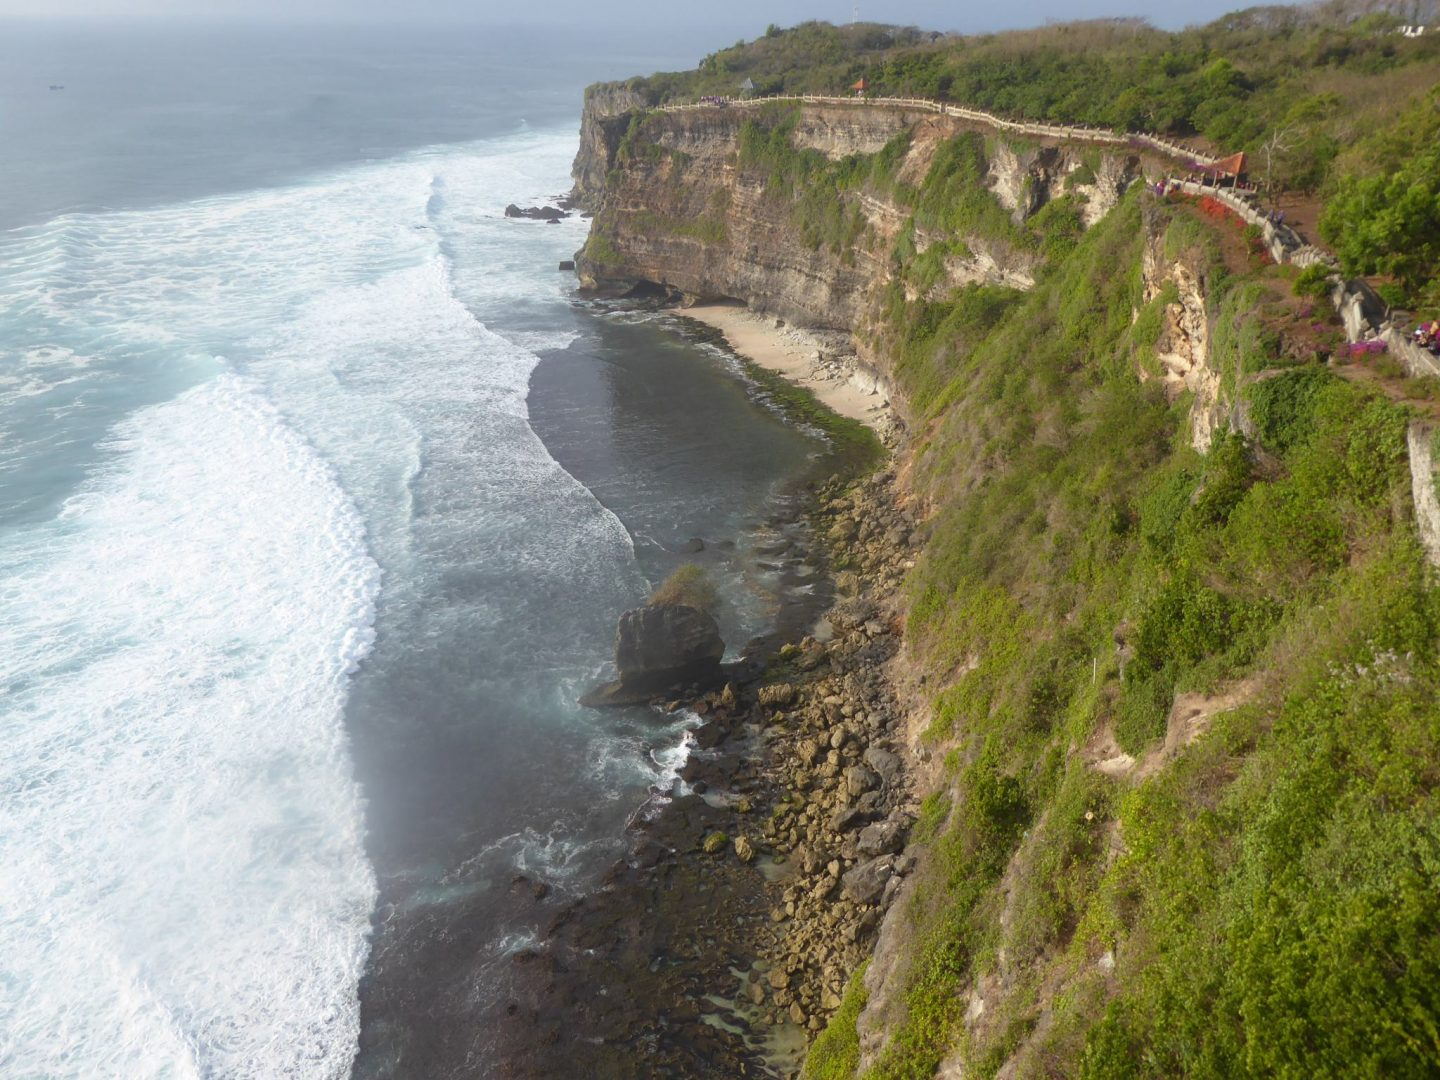 Looking over the cliff edge at the Uluwatu Temple  - 8 Must See Balinese Temples